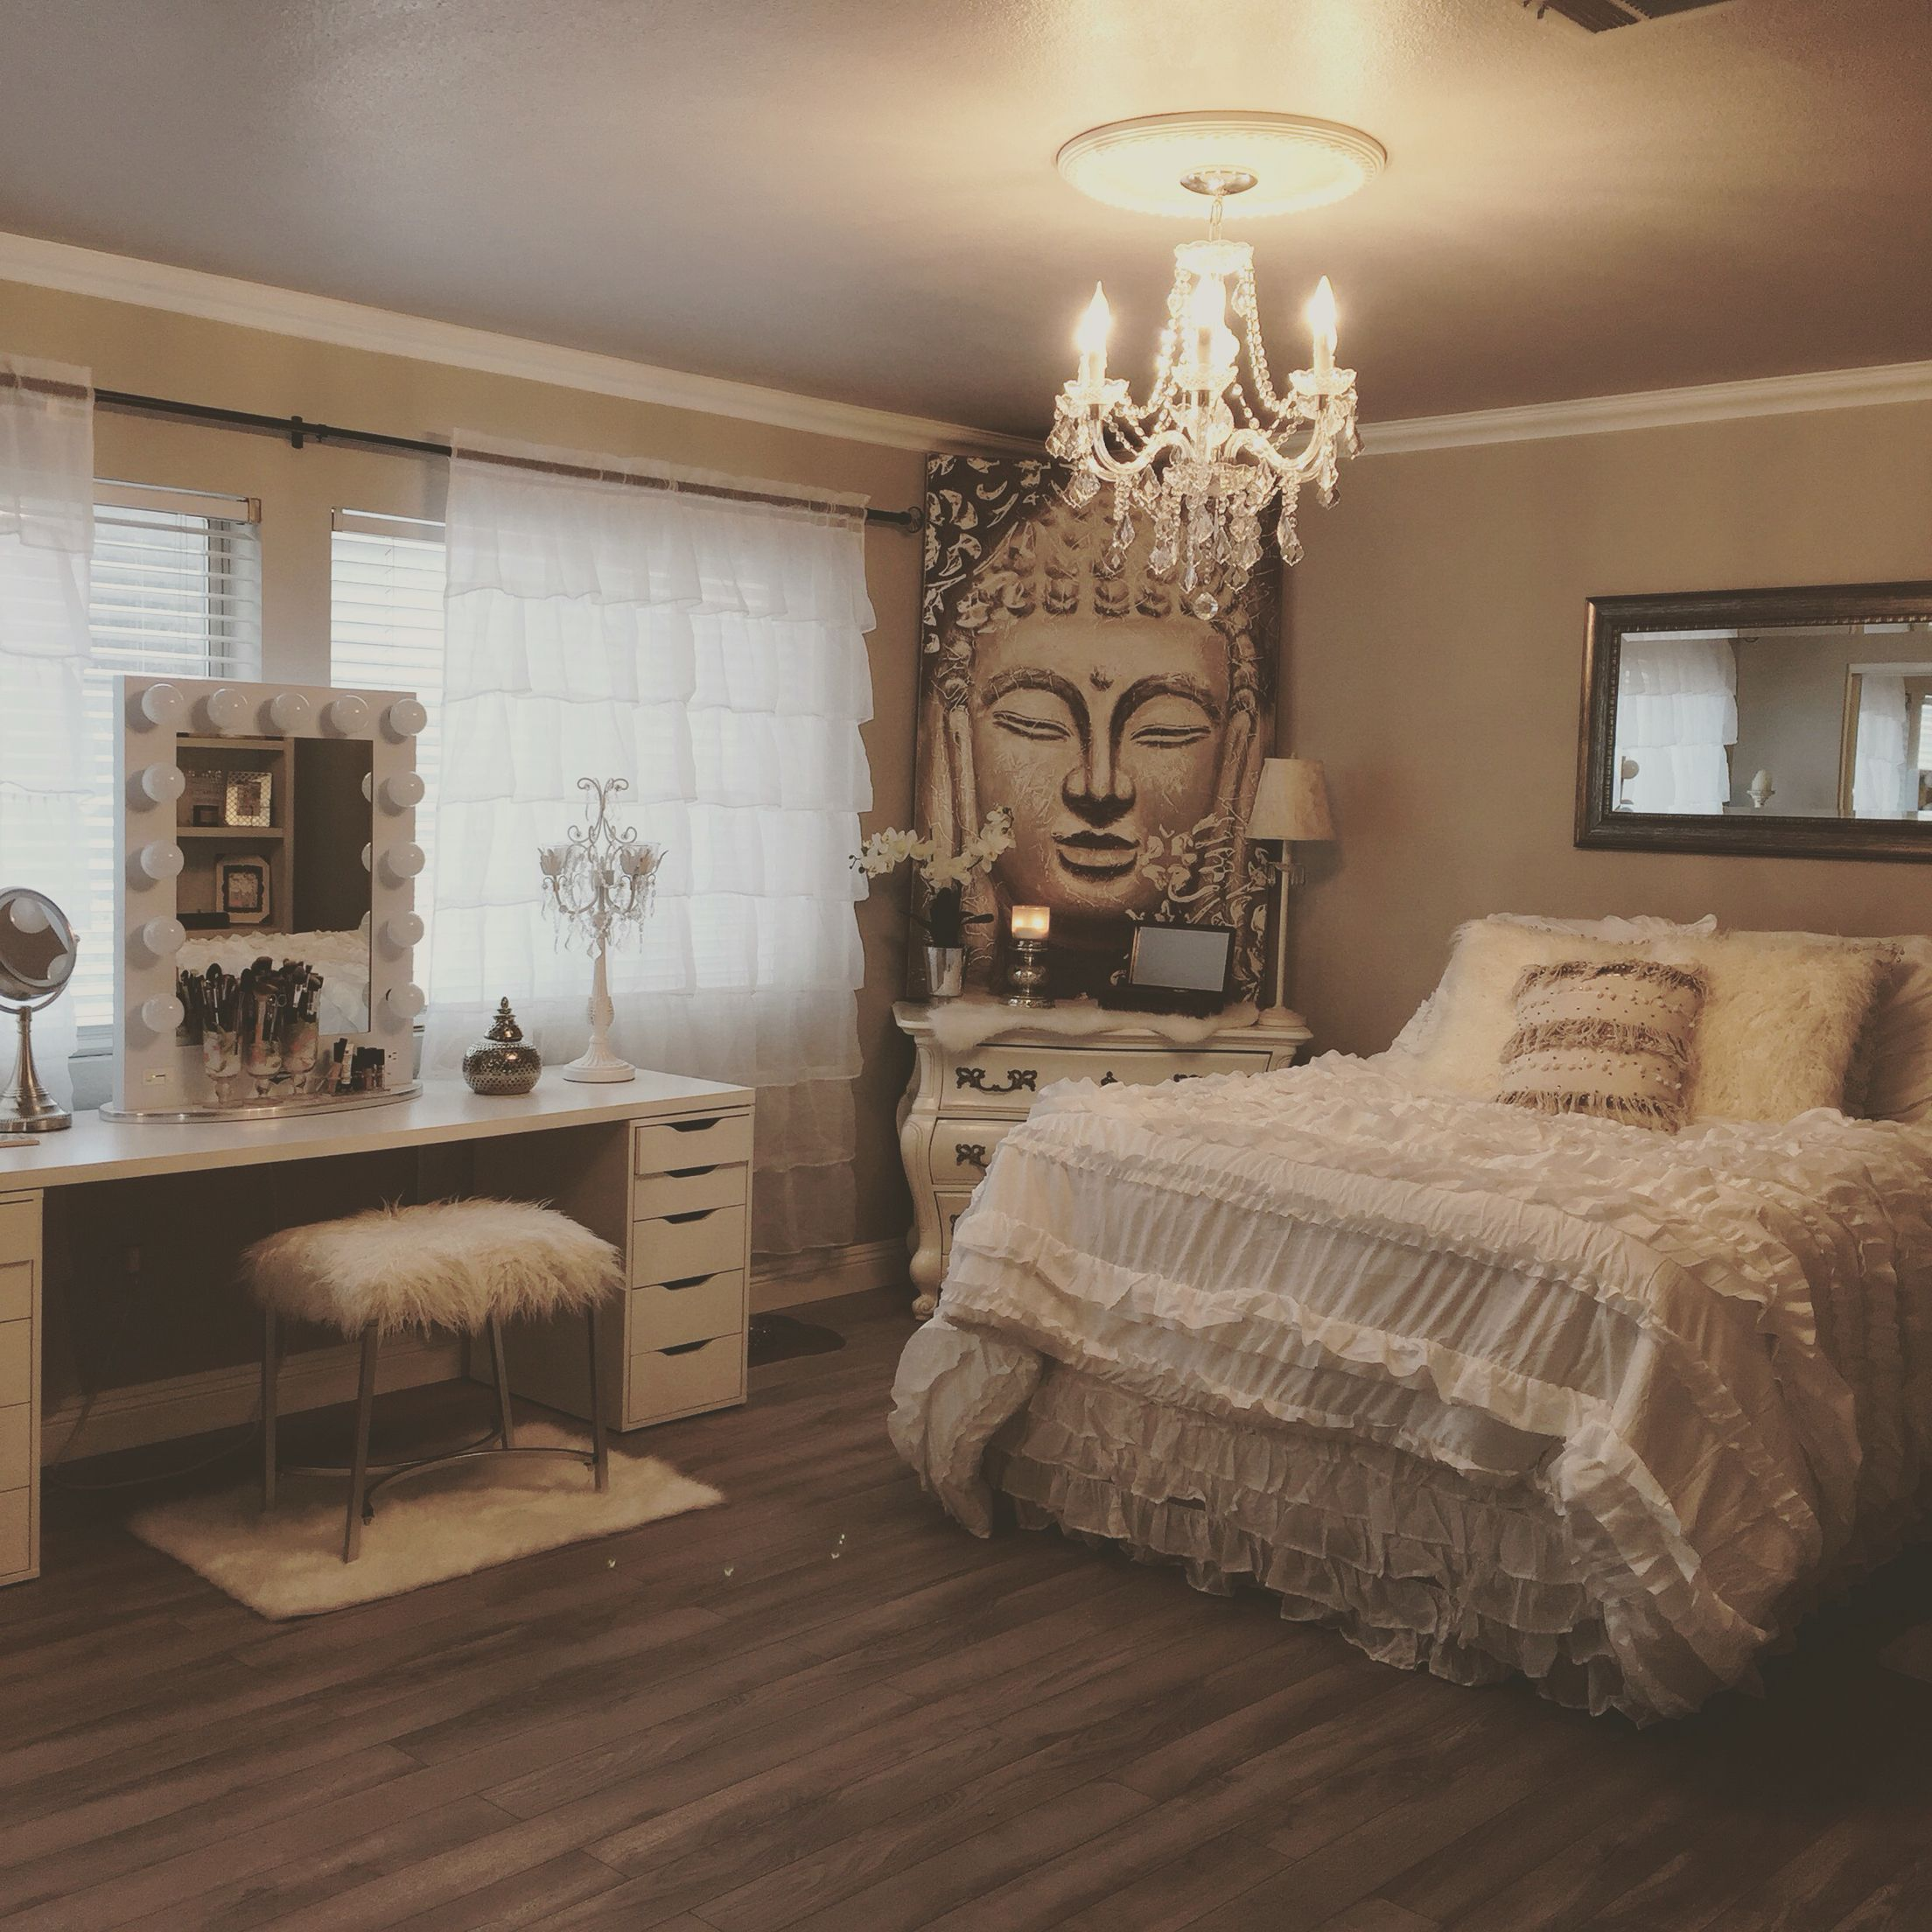 Shabby chic meets zen glam my new bedroom pinterest for Apartment bedroom design ideas